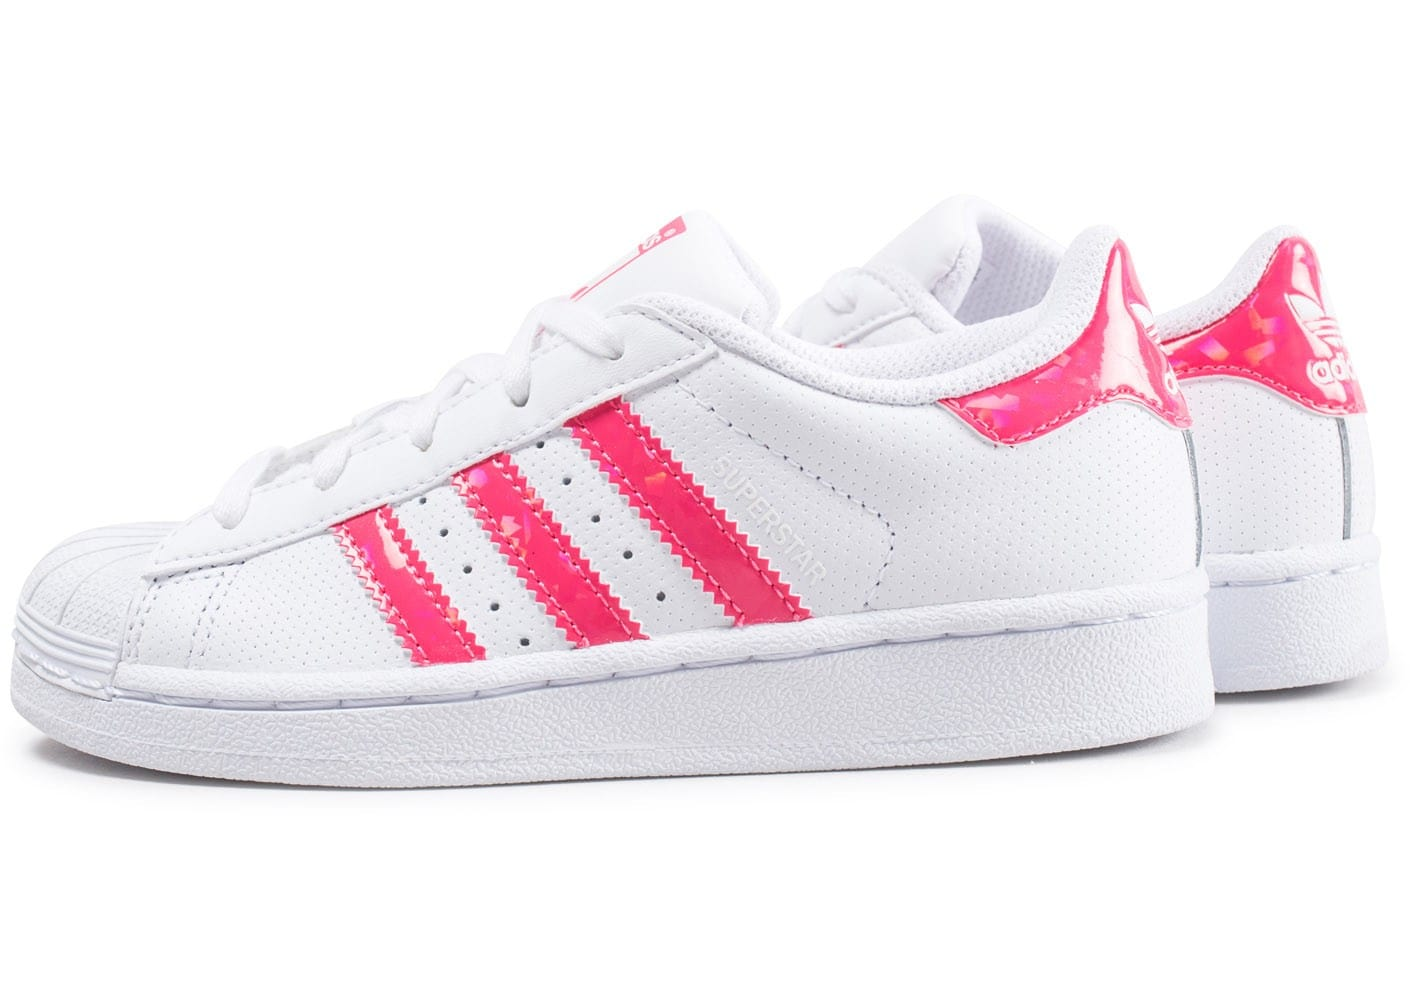 adidas superstar enfant blanche et rose iridescent chaussures adidas chausport. Black Bedroom Furniture Sets. Home Design Ideas